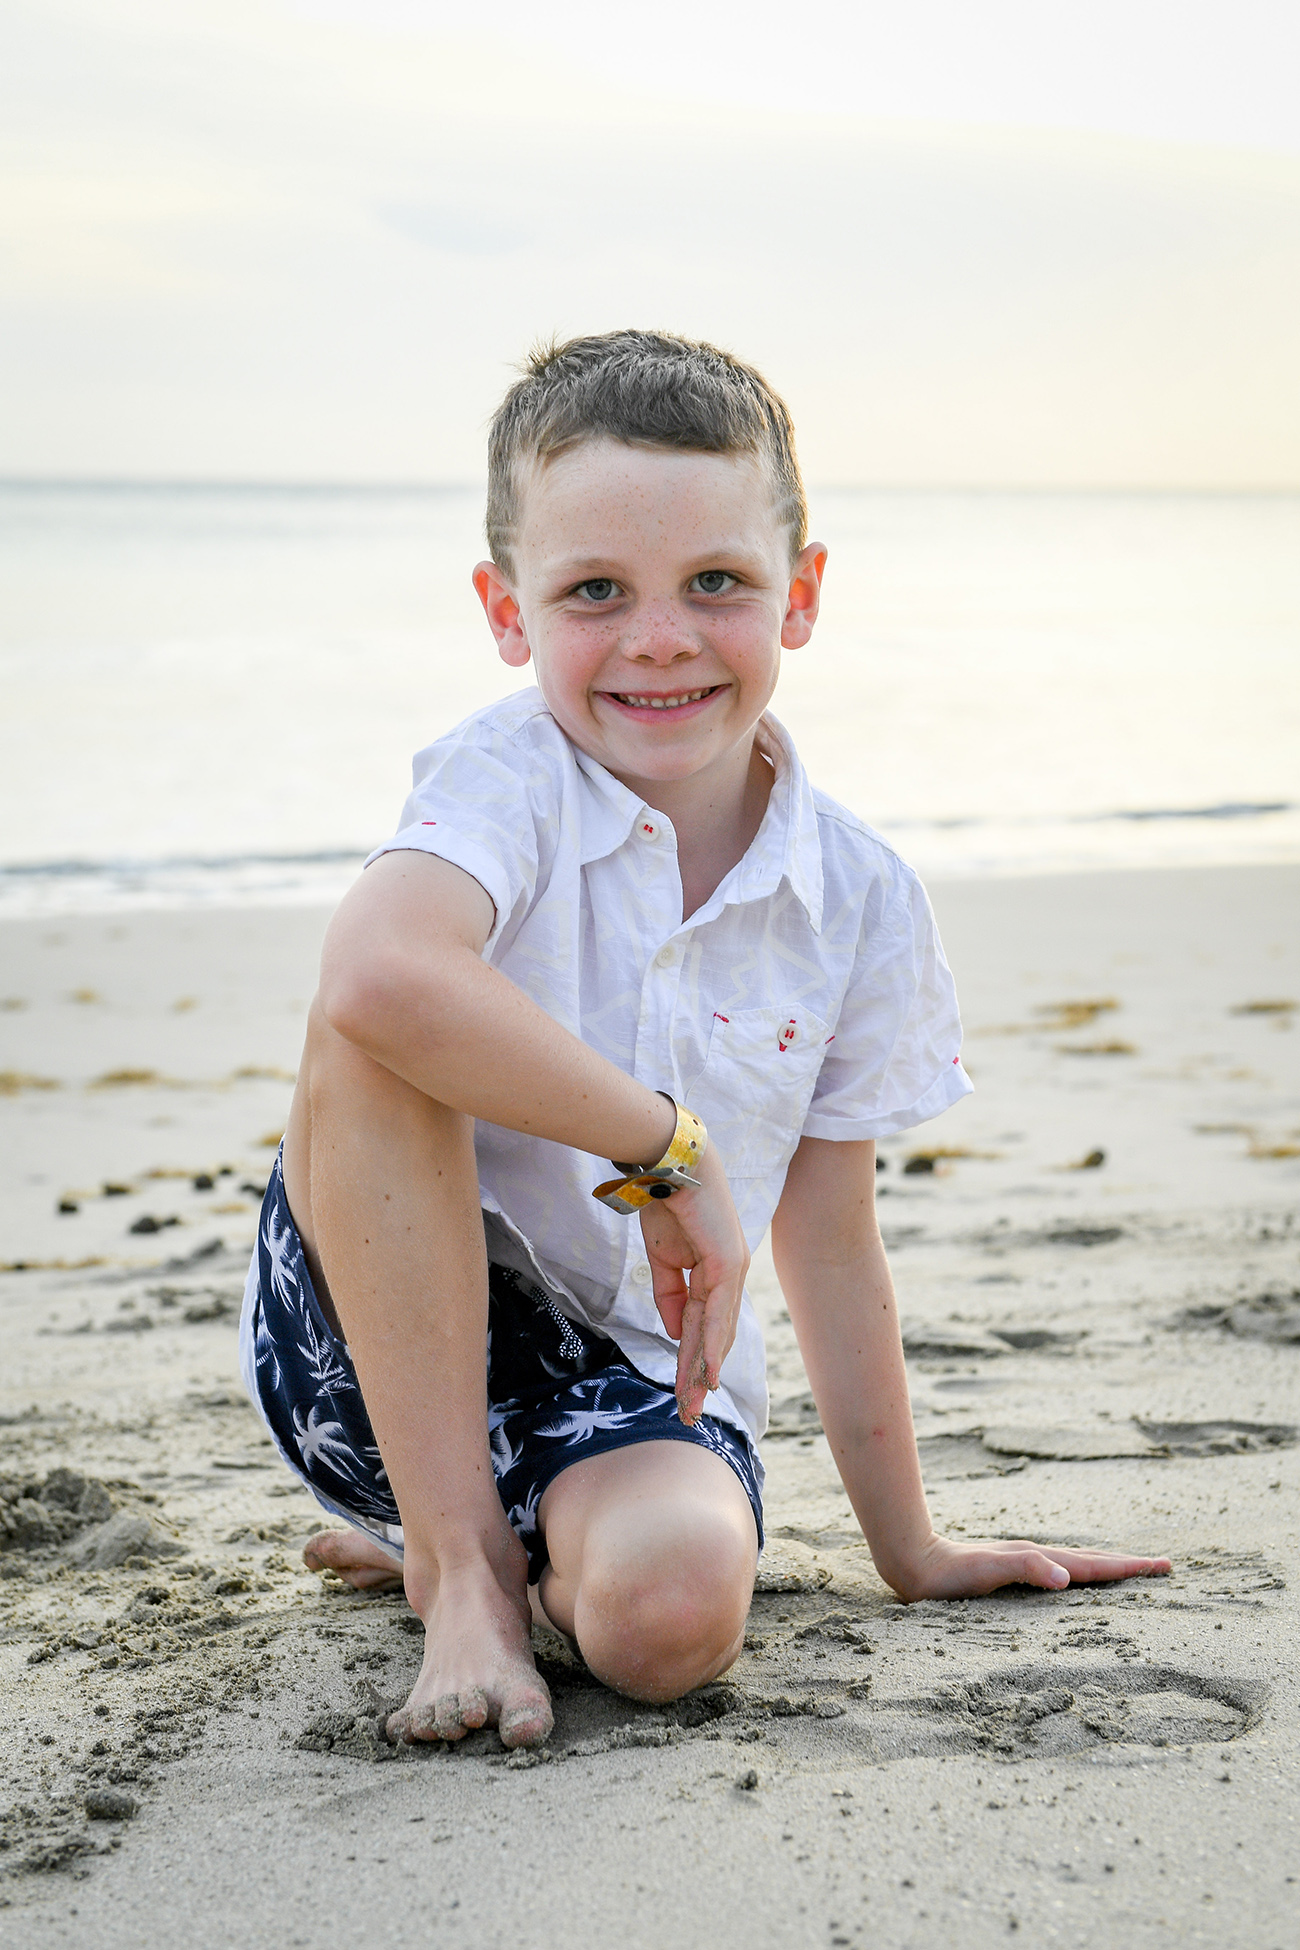 Young boy seated on the beach in Fiji